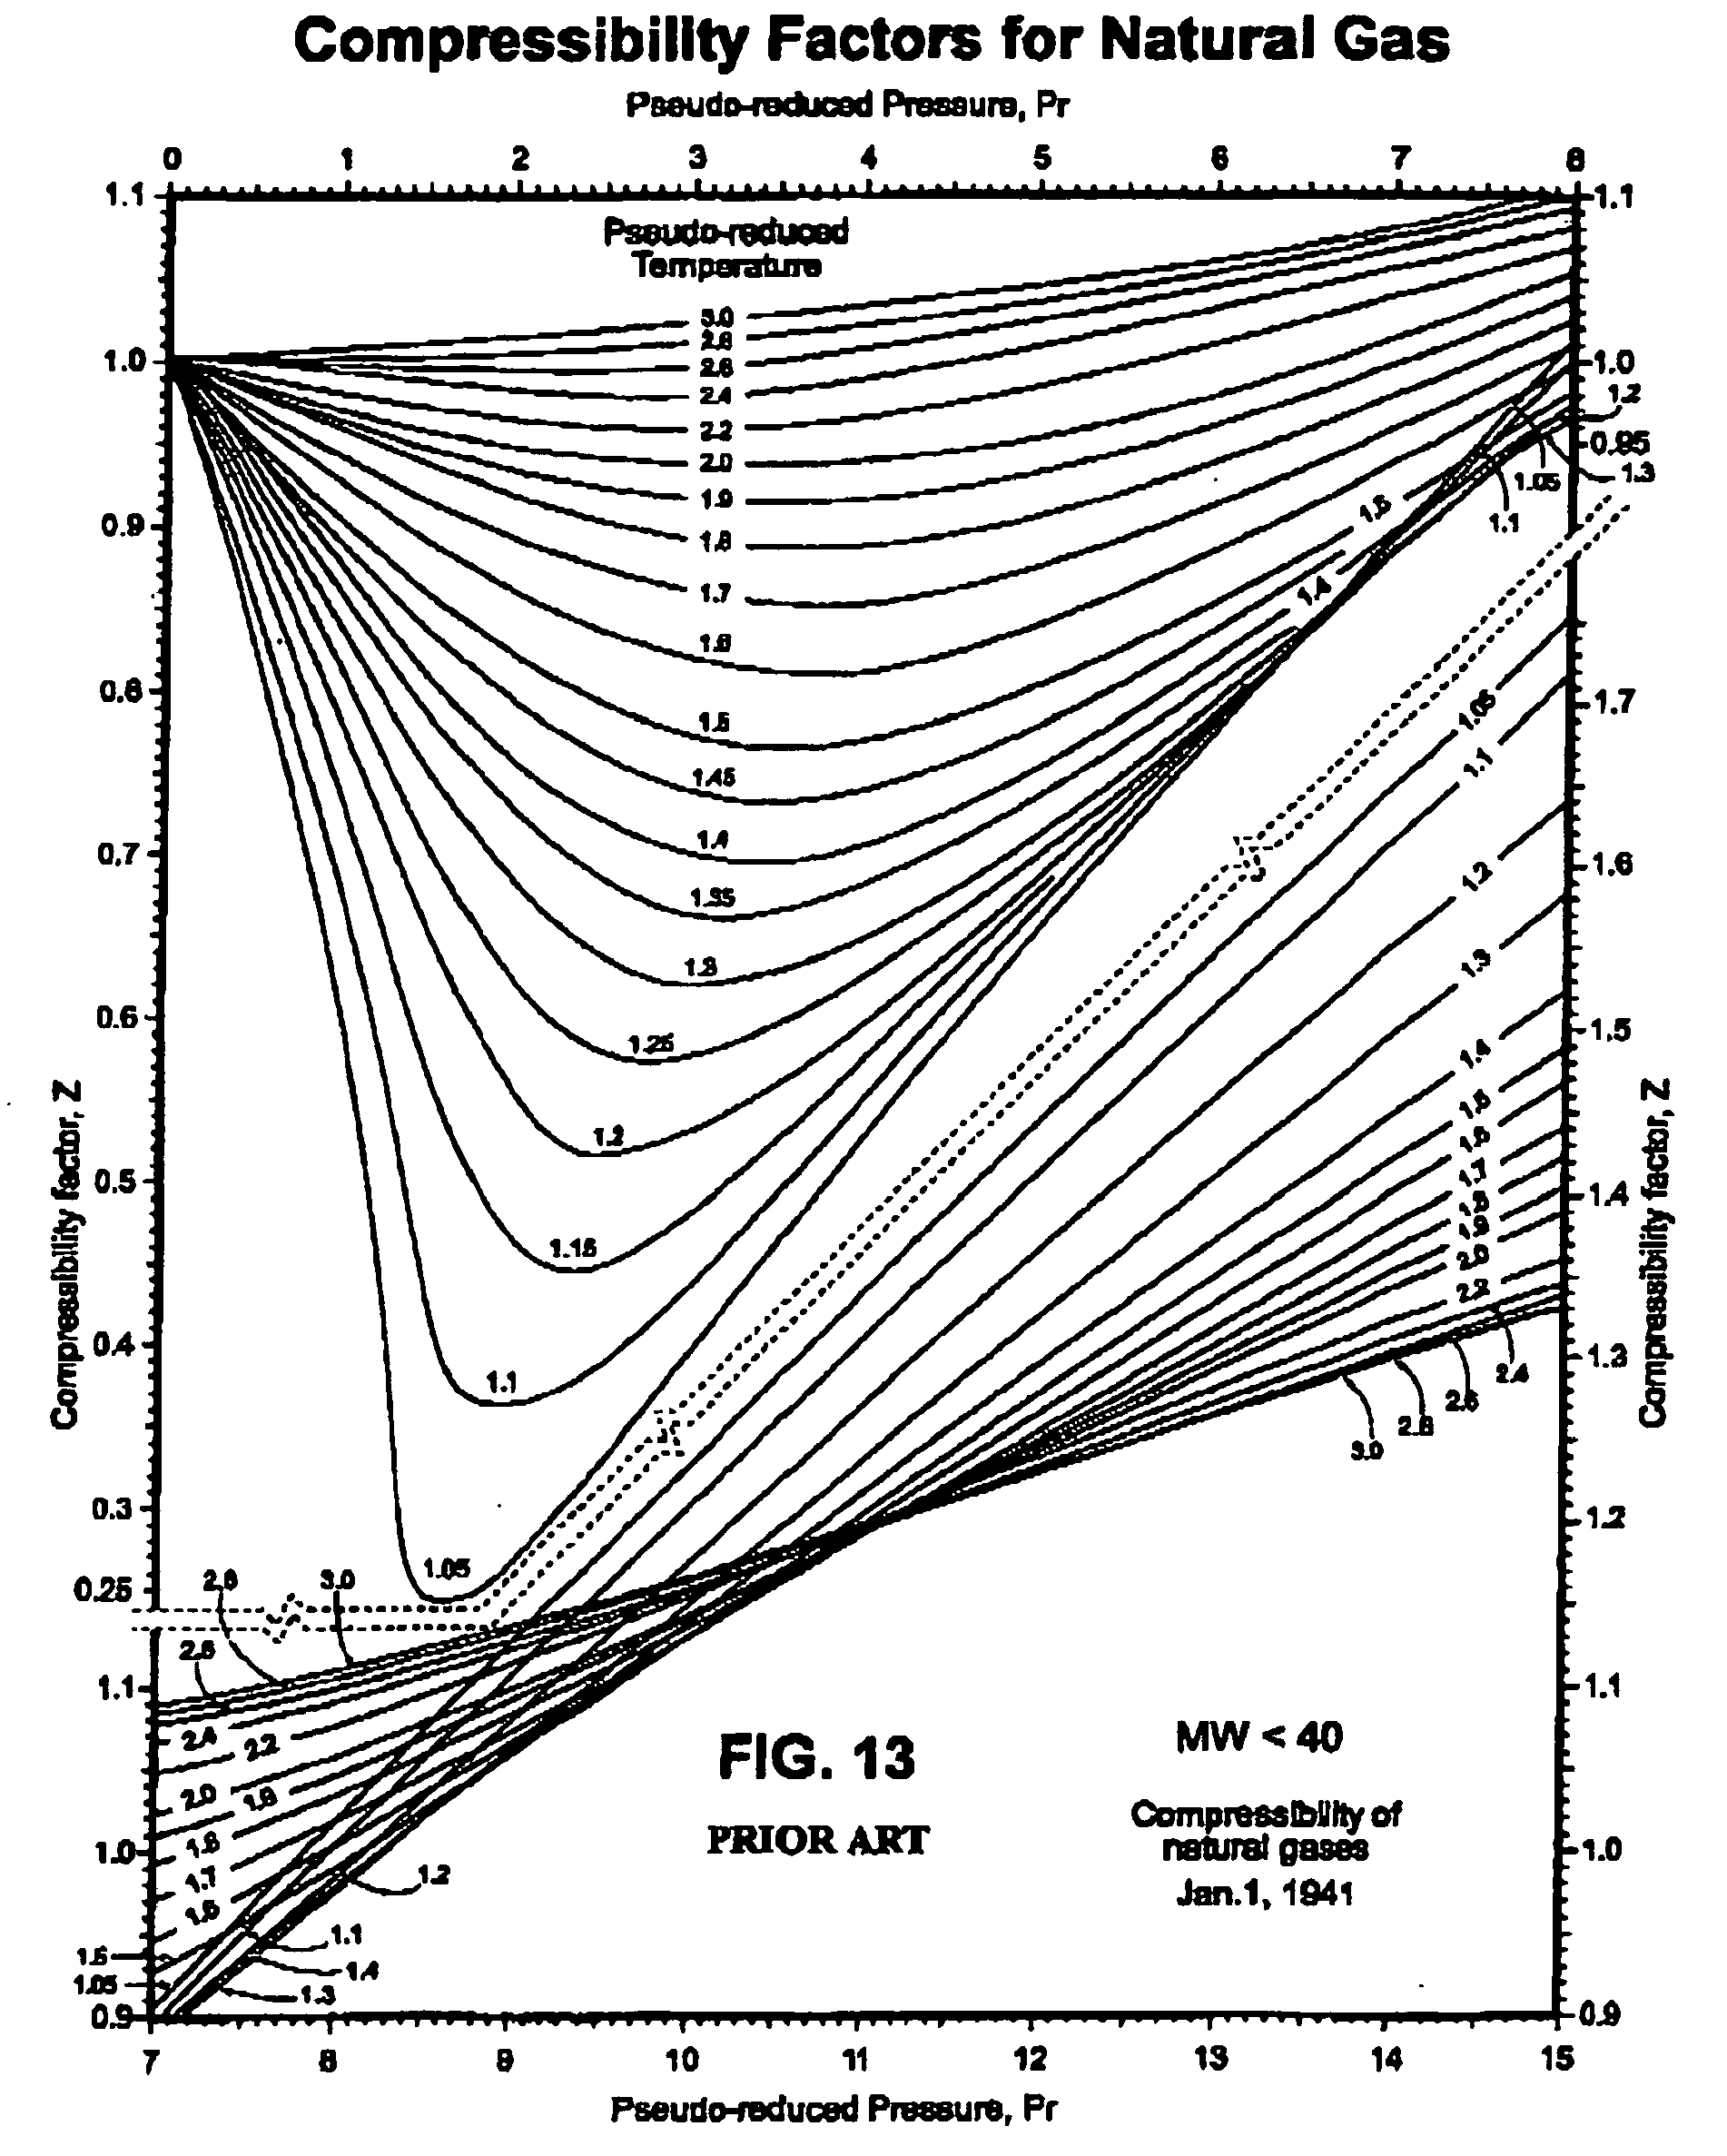 compressibility factor graph. patent drawing compressibility factor graph i